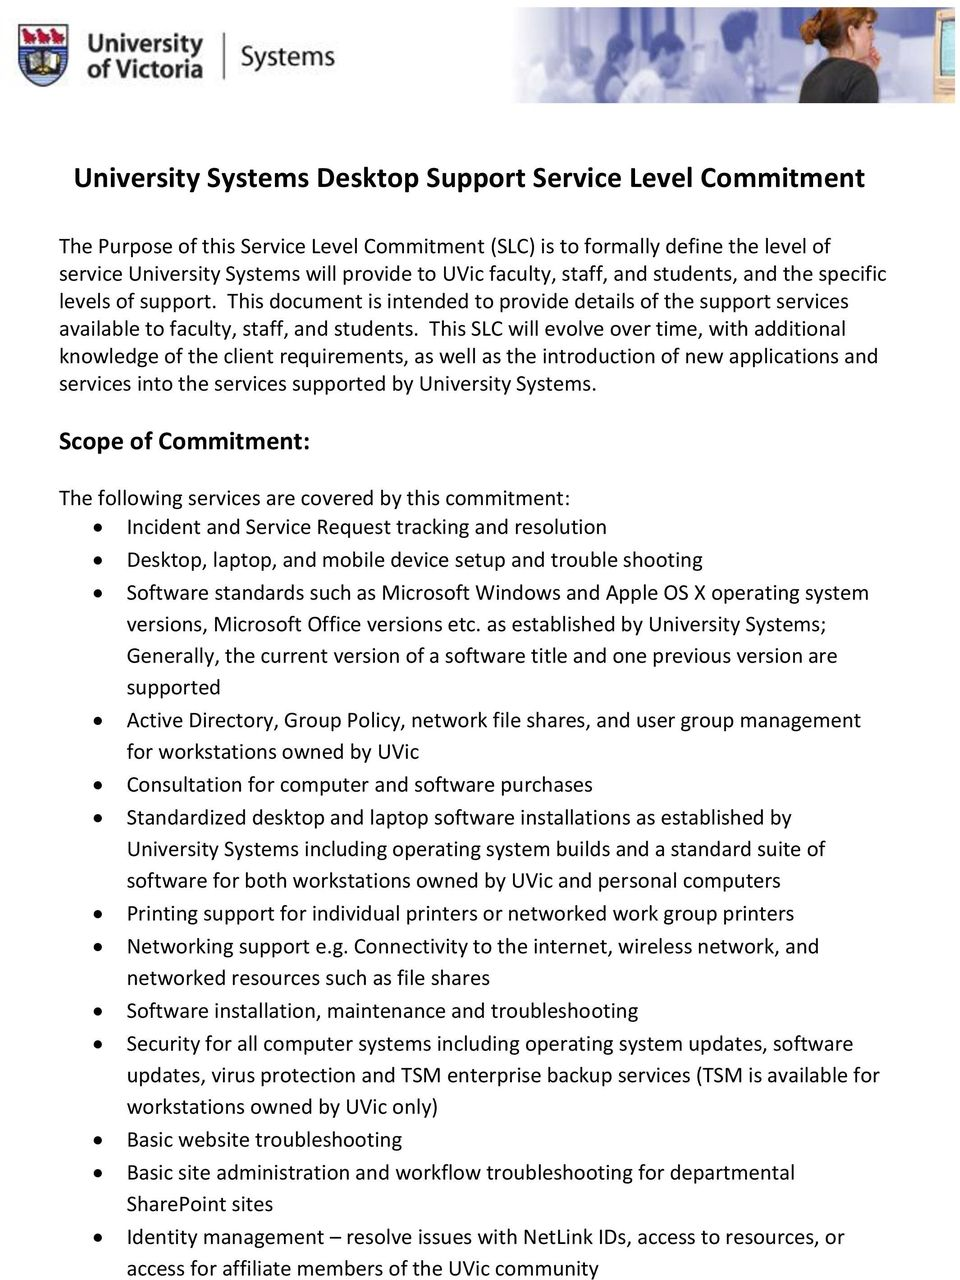 This SLC will evolve over time, with additional knowledge of the client requirements, as well as the introduction of new applications and services into the services supported by University Systems.